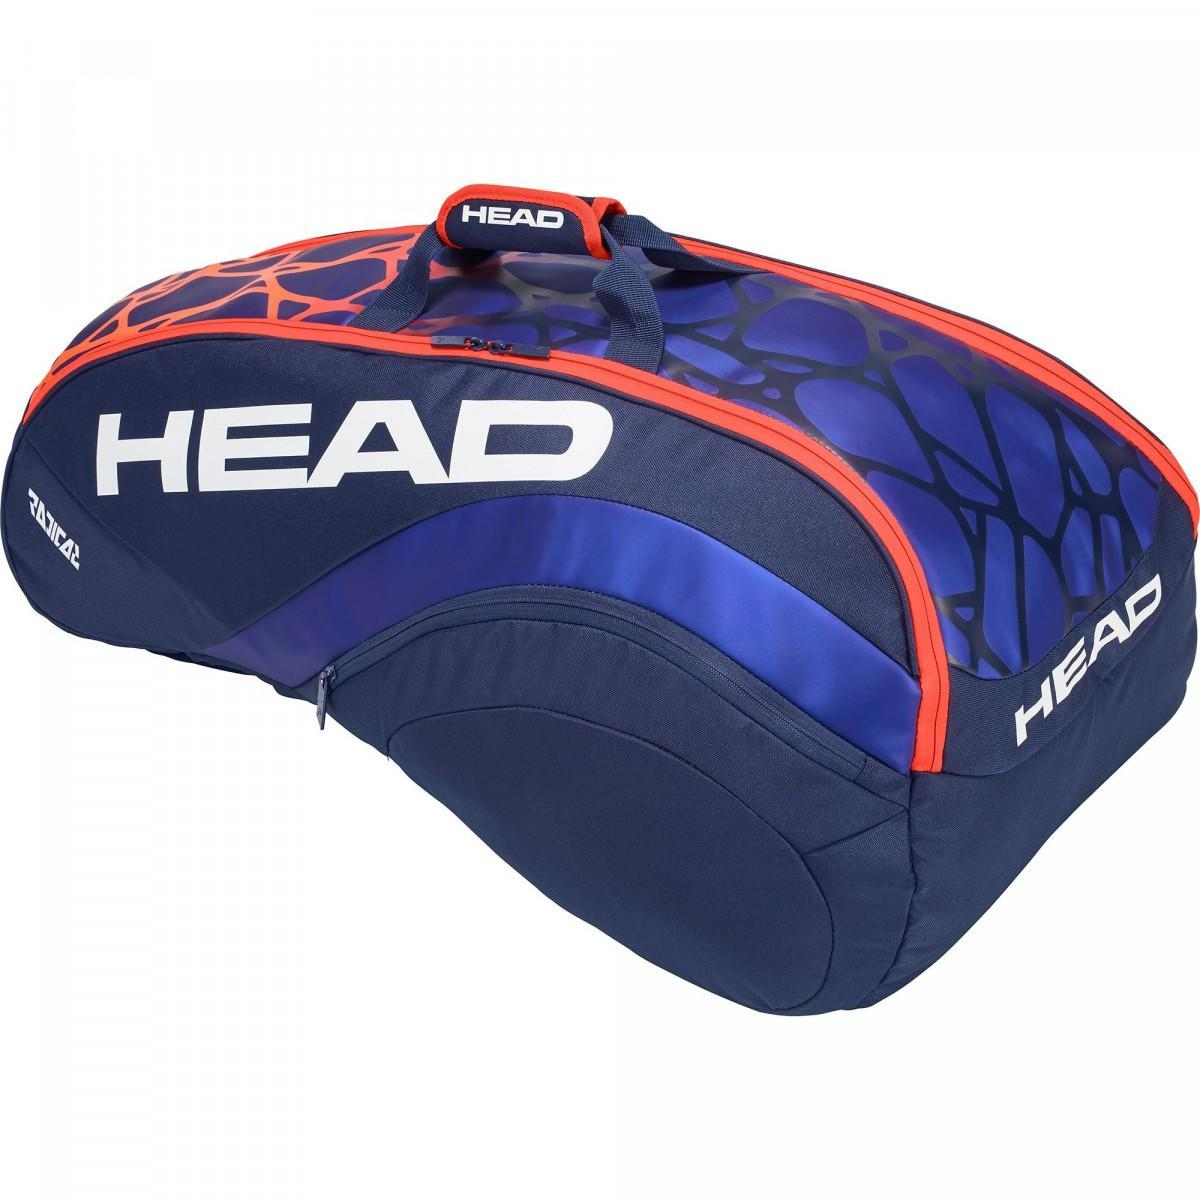 Теннисная сумка Head Radical 9R Combi blue/orange